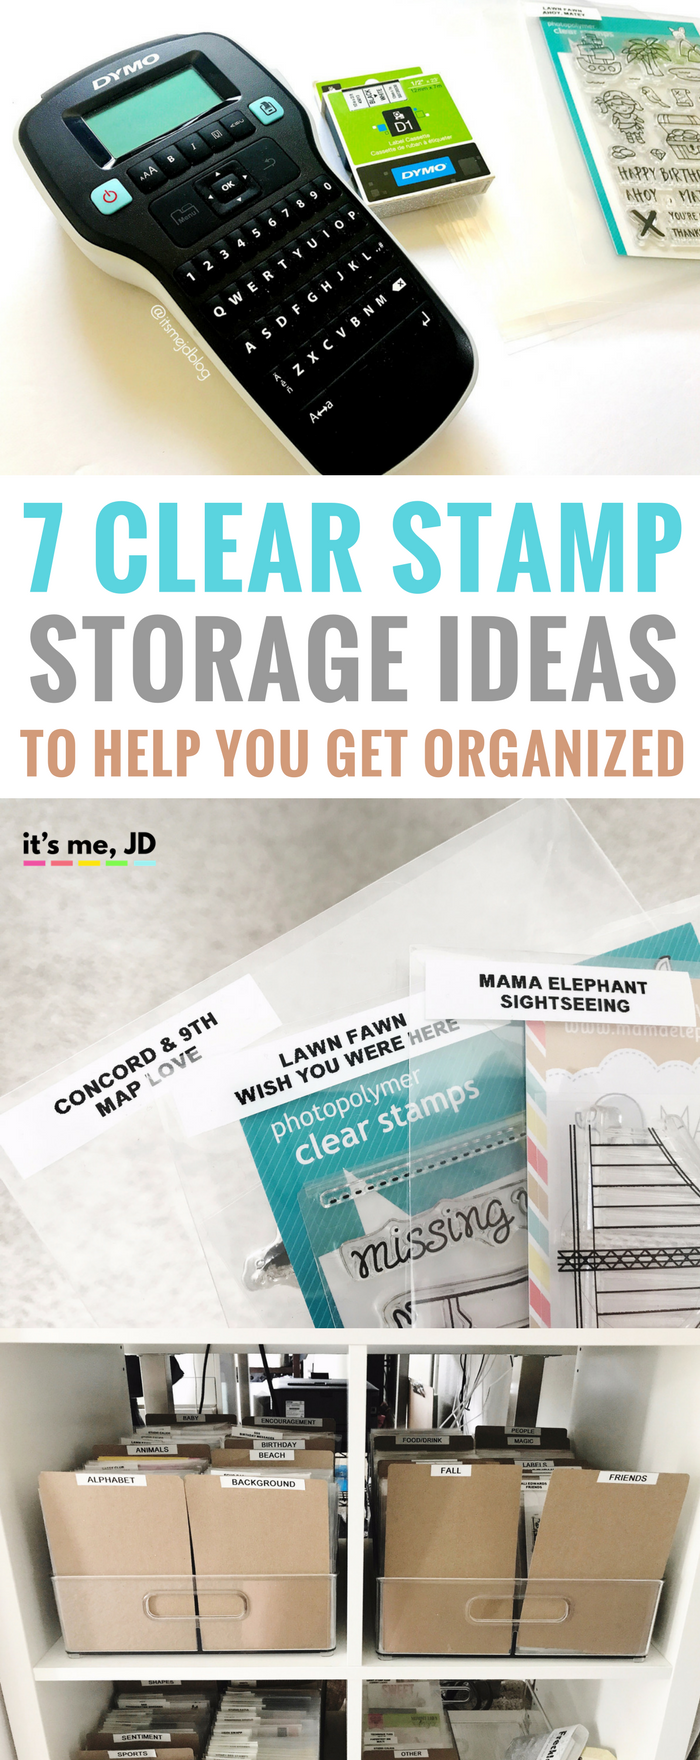 #papercrafts #stamping #cardmaking #scrapbook Clear Stamp Storage Ideas To Help You Organize, binder, pockets, DIY